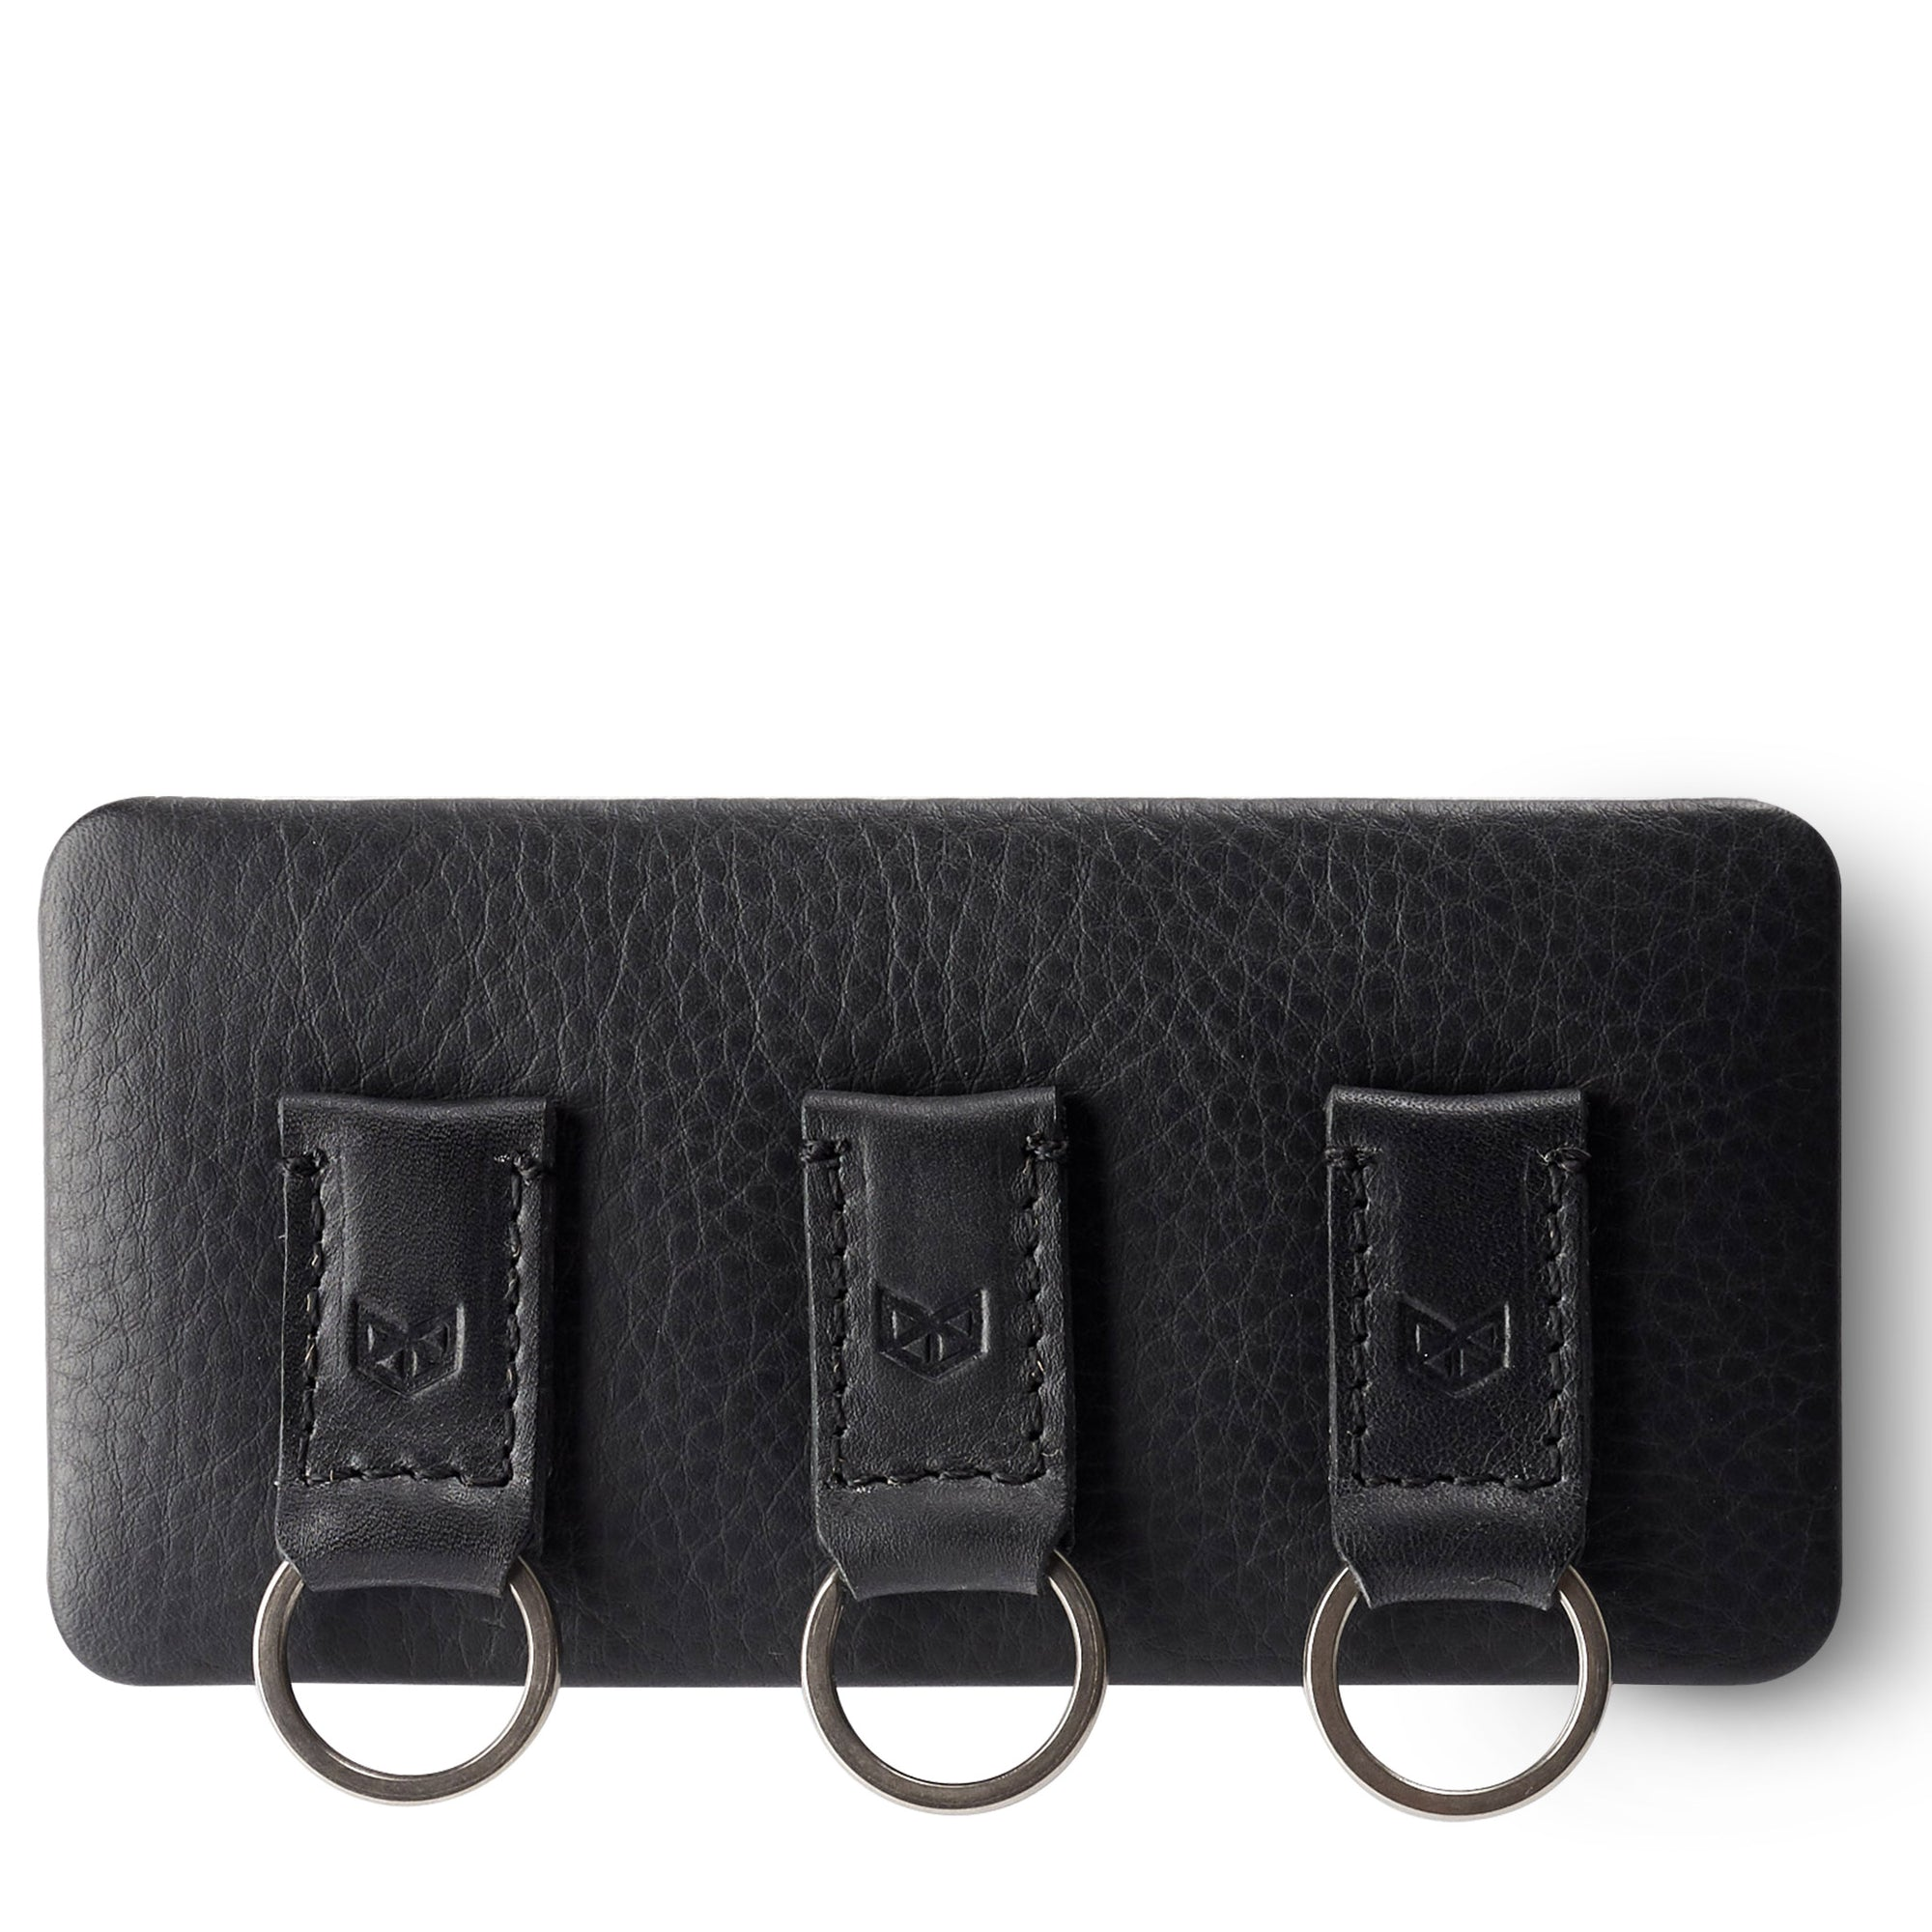 Magnetic Key Holder · Black